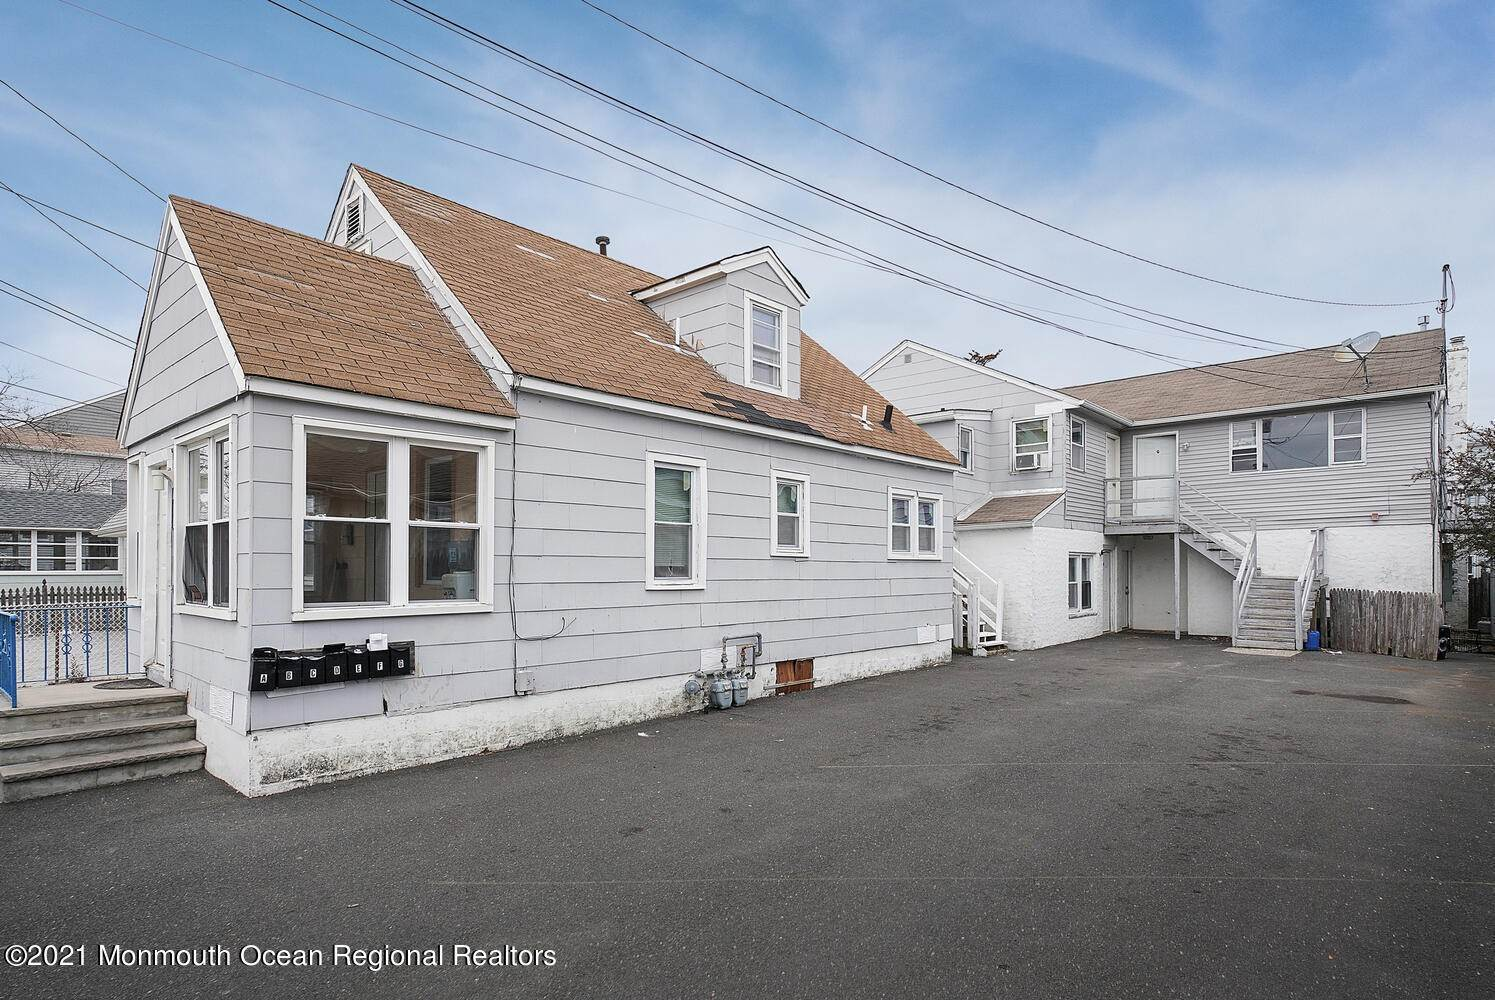 Multi-Family Homes for Sale at 250 Hancock Avenue Seaside Heights, New Jersey 08751 United States